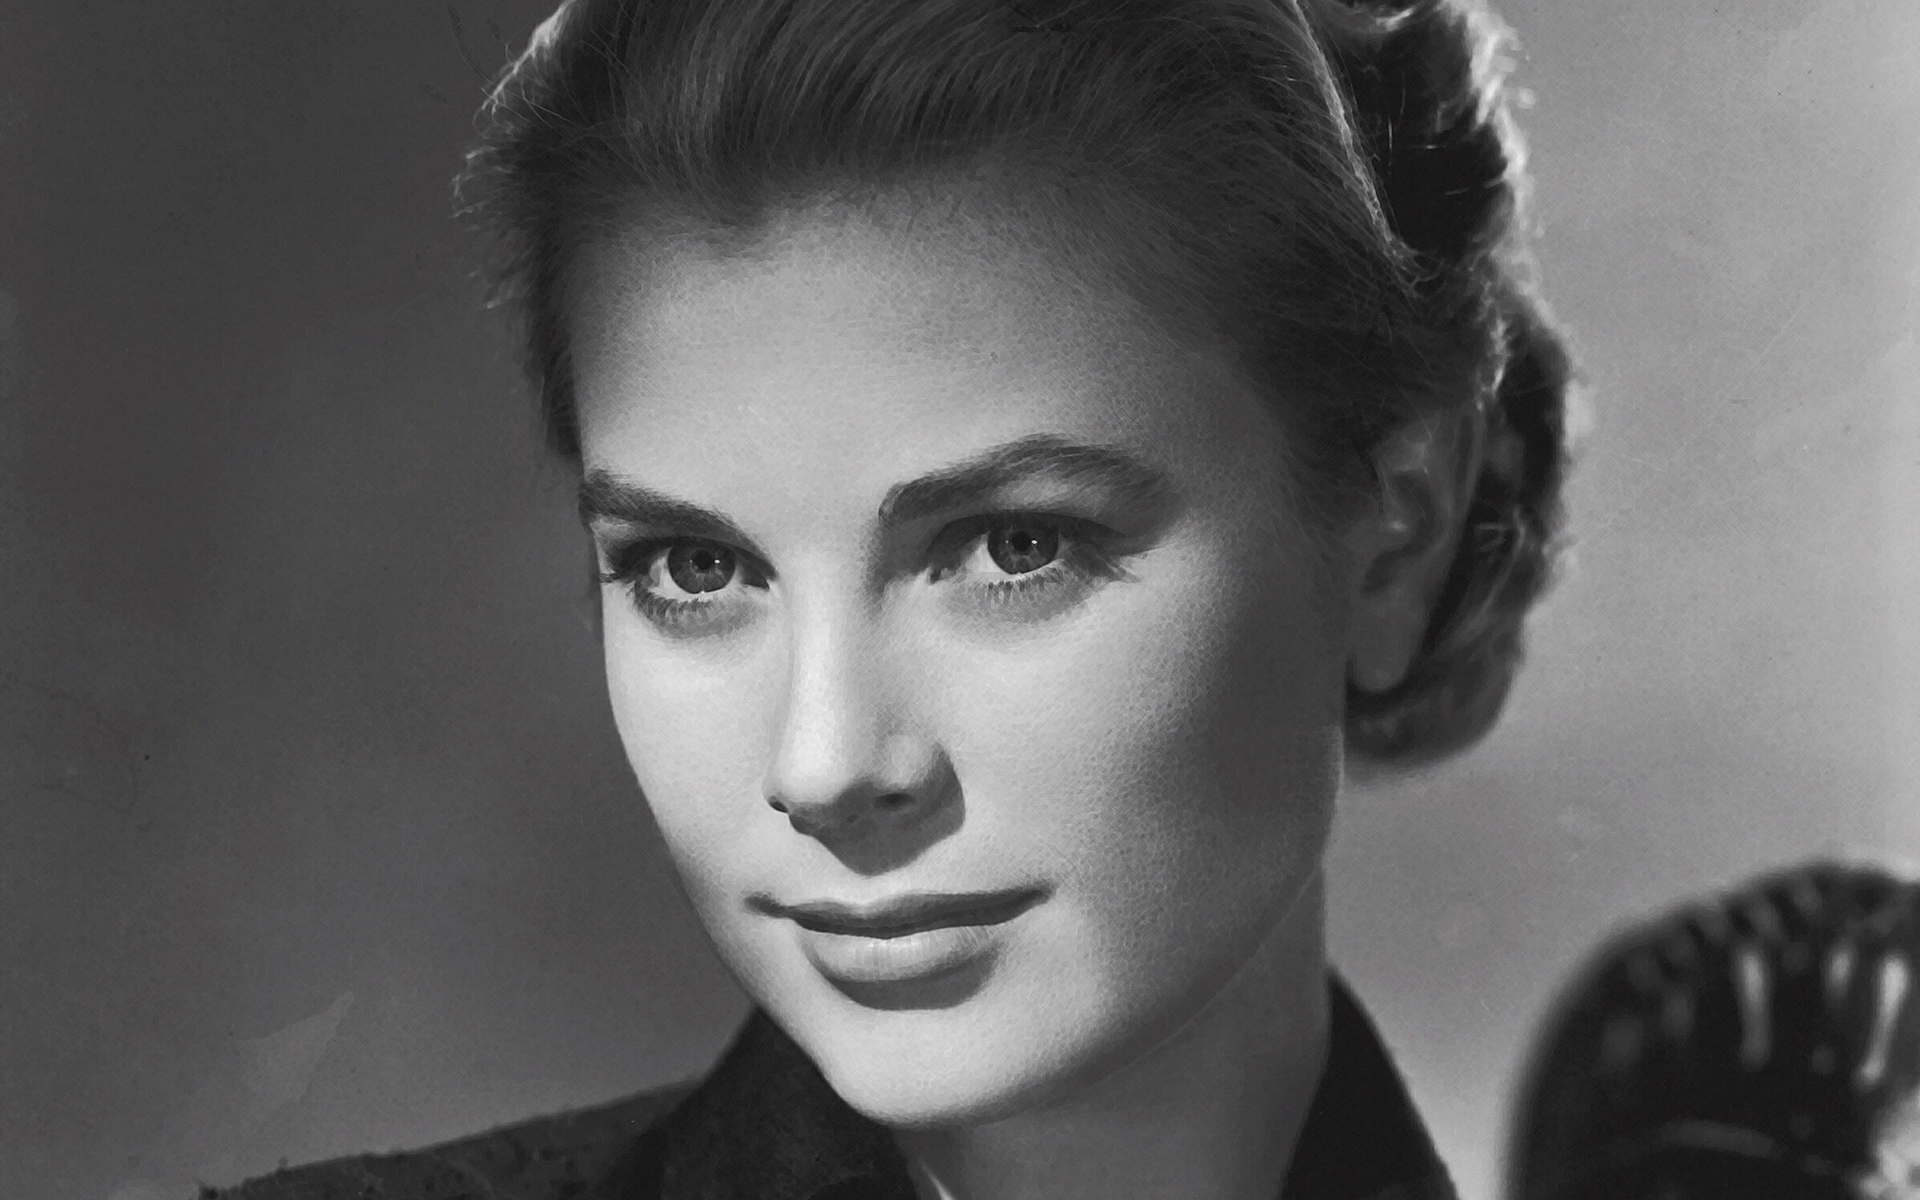 50 anos de textos grace kelly de volta aos holofotes. Black Bedroom Furniture Sets. Home Design Ideas